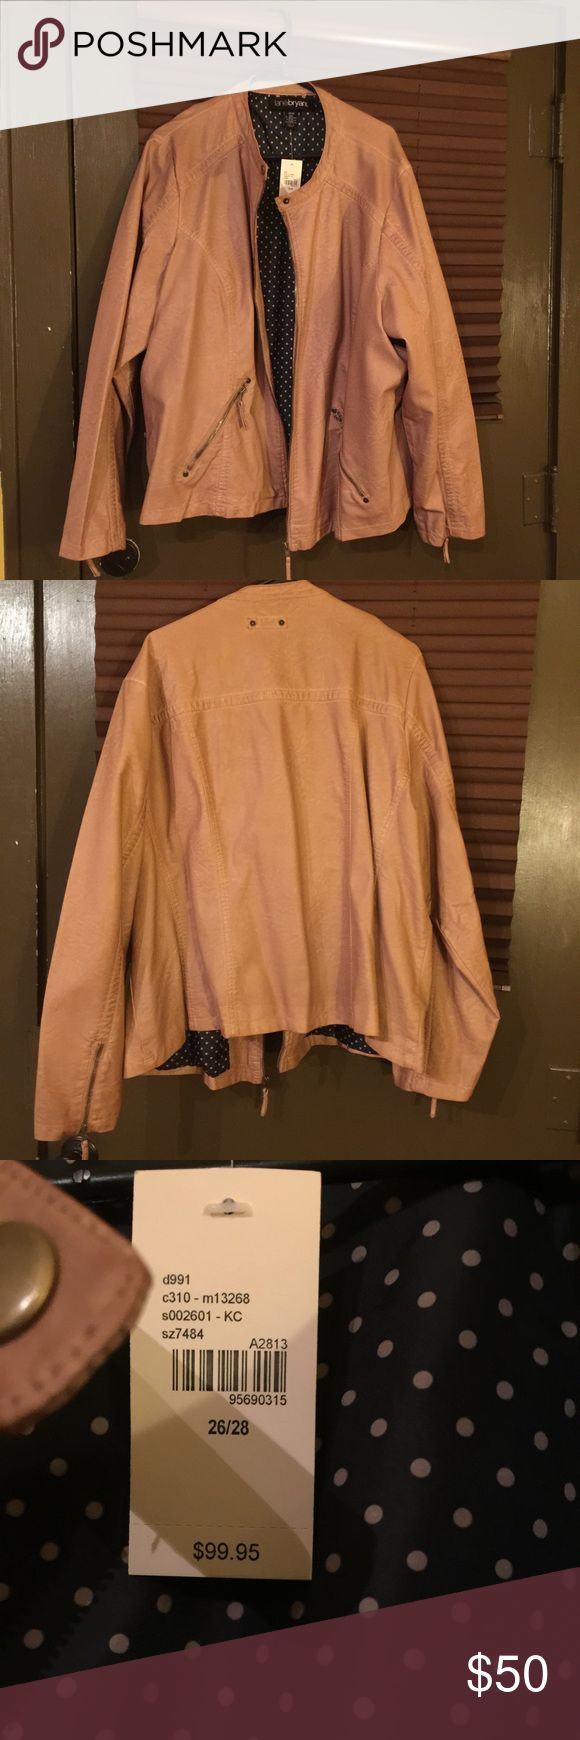 """NWT Tan Faux Leather Lane Bryant biker jacket Brand new with tags. Been sitting in my closet...the arms are too long for me. See tags for material. Arm length: 26.5"""" (has decorative zippers on wrists) length (shoulder to tip): 29"""", fully lined. The size is 26/28, however it runs large on me and I'm a chunky girl! LOL Let me know if you have further questions! Lane Bryant Jackets & Coats"""